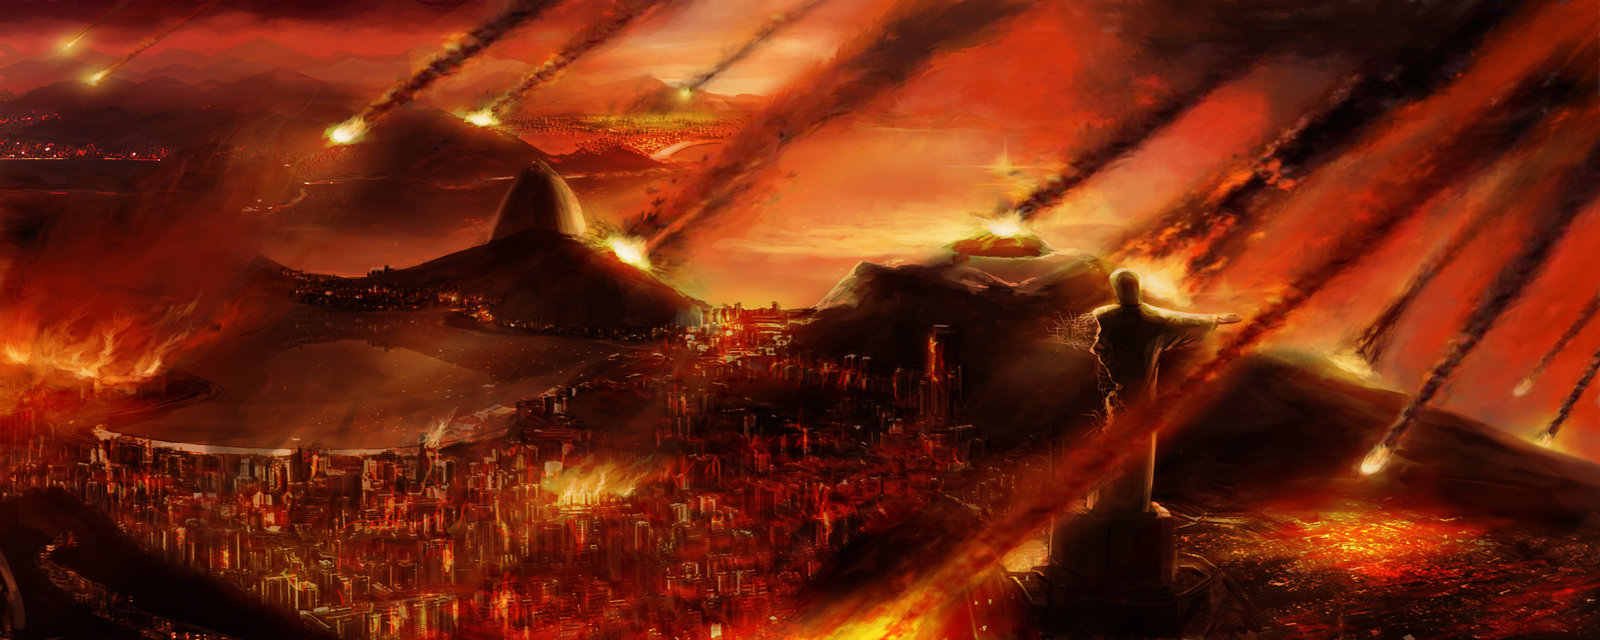 The Great Tribulation is a future period of 7 years of great suffering on earth due to the tyrannical rule of an evil global dictator called the Antichrist, and also God's judgment and wrath being poured out into the world.